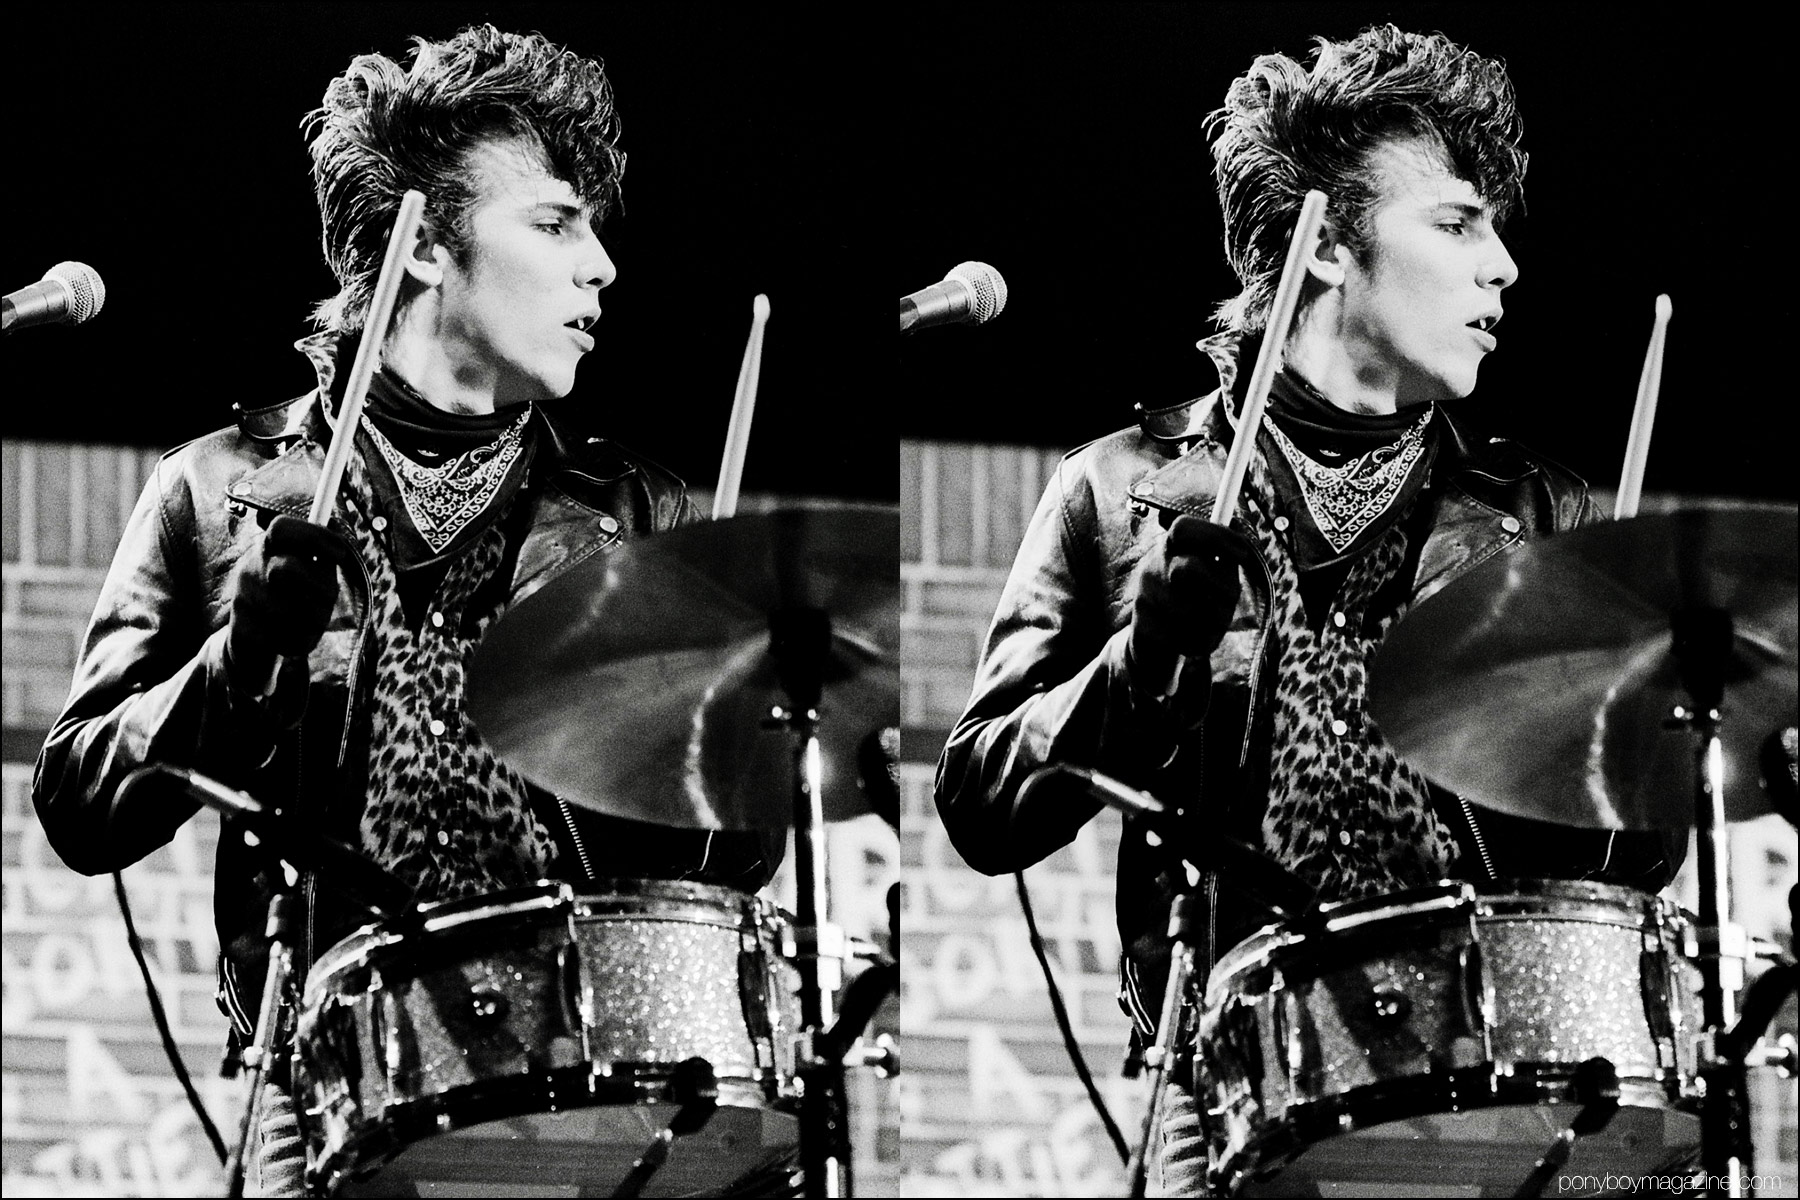 1980's neo-rockabilly drummer Slim Jim Phantom photographed onstage in Germany by Manfred Becker. Ponyboy magazine NY.